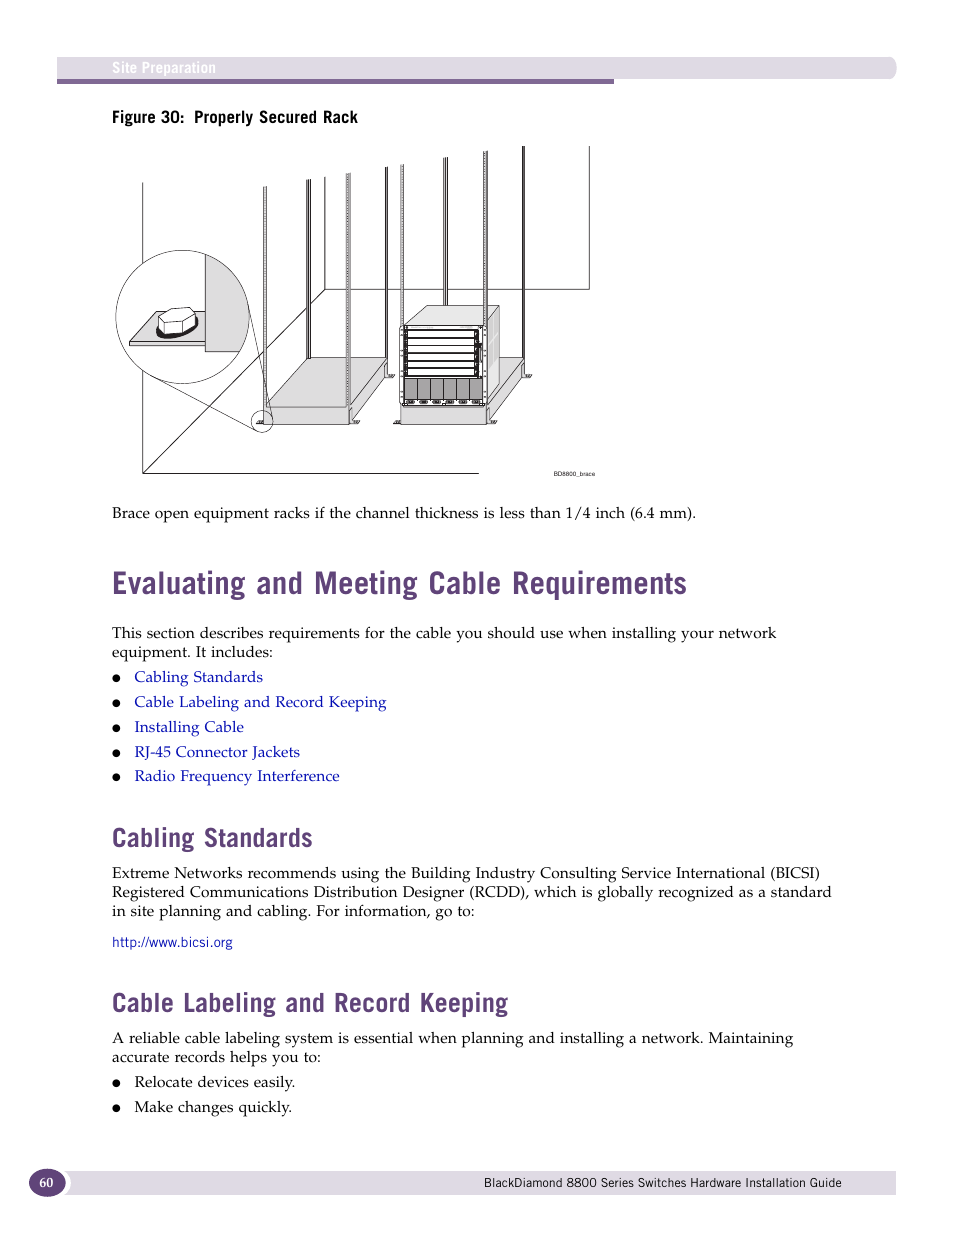 Evaluating and meeting cable requirements, Cabling standards, Cable  labeling and record keeping | Own